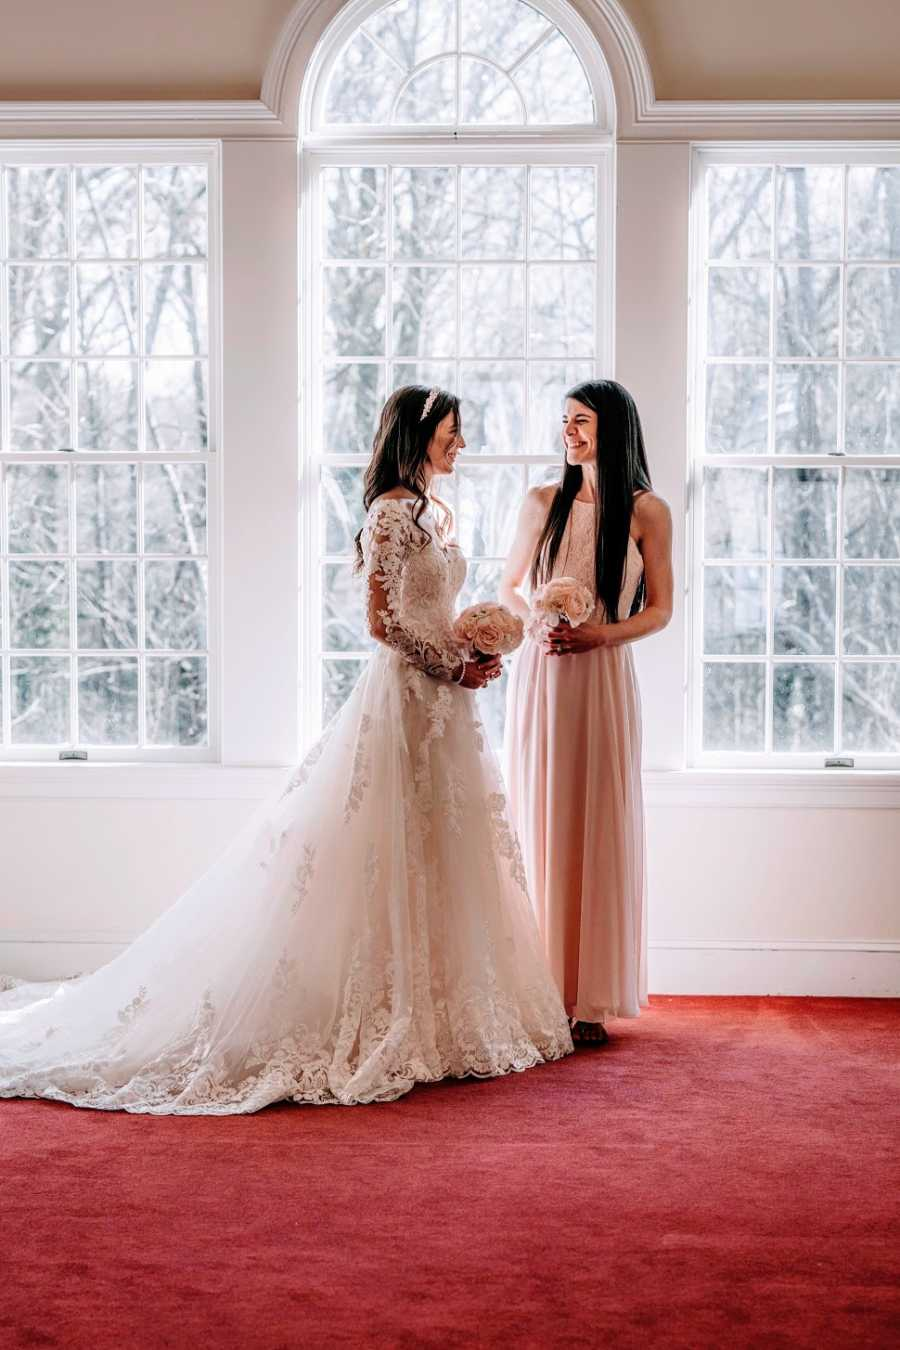 A woman and her adopted sister stand together at her wedding